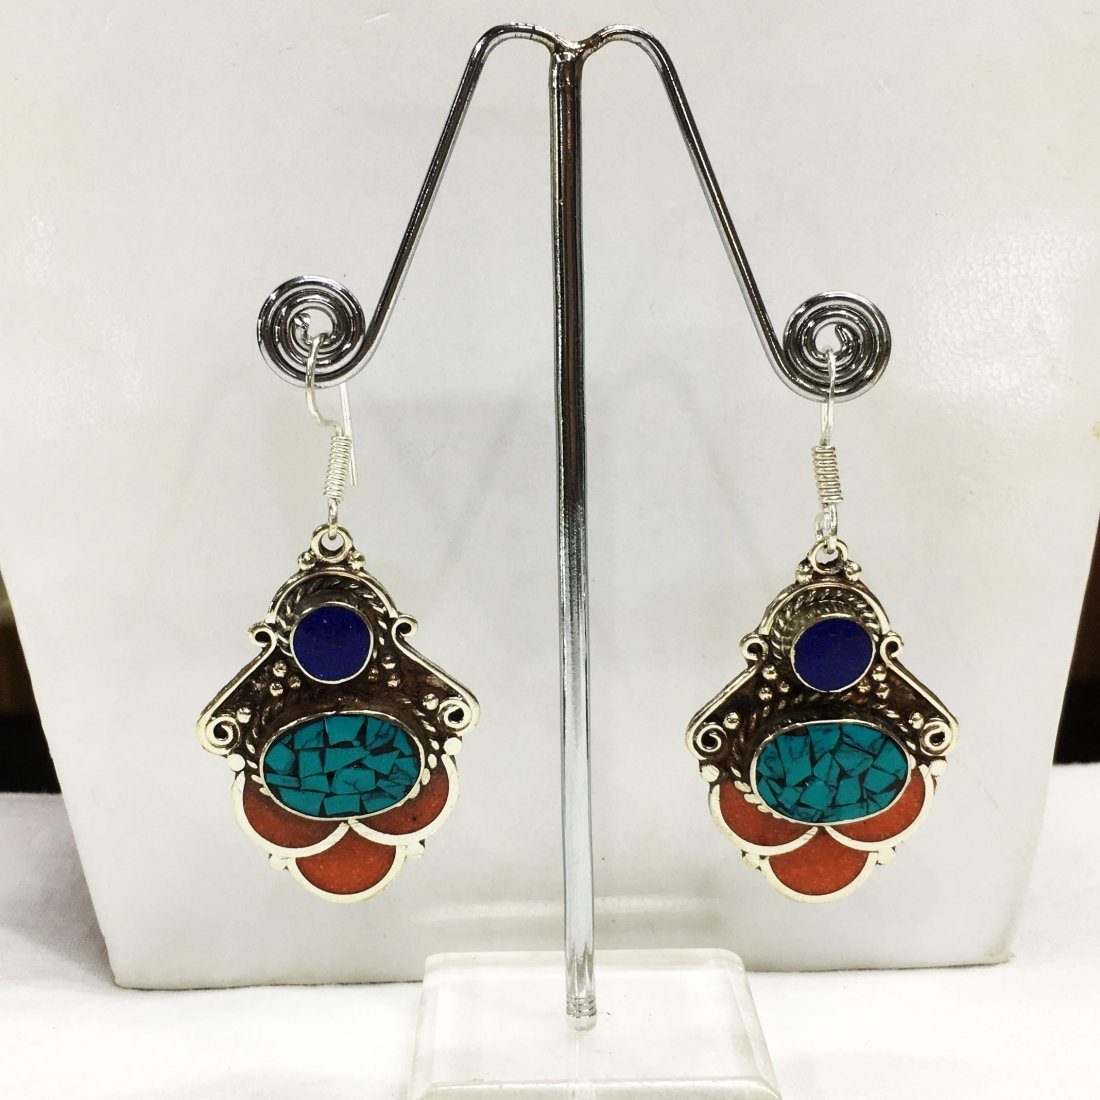 Antique Traditional Vintage Choker Earring